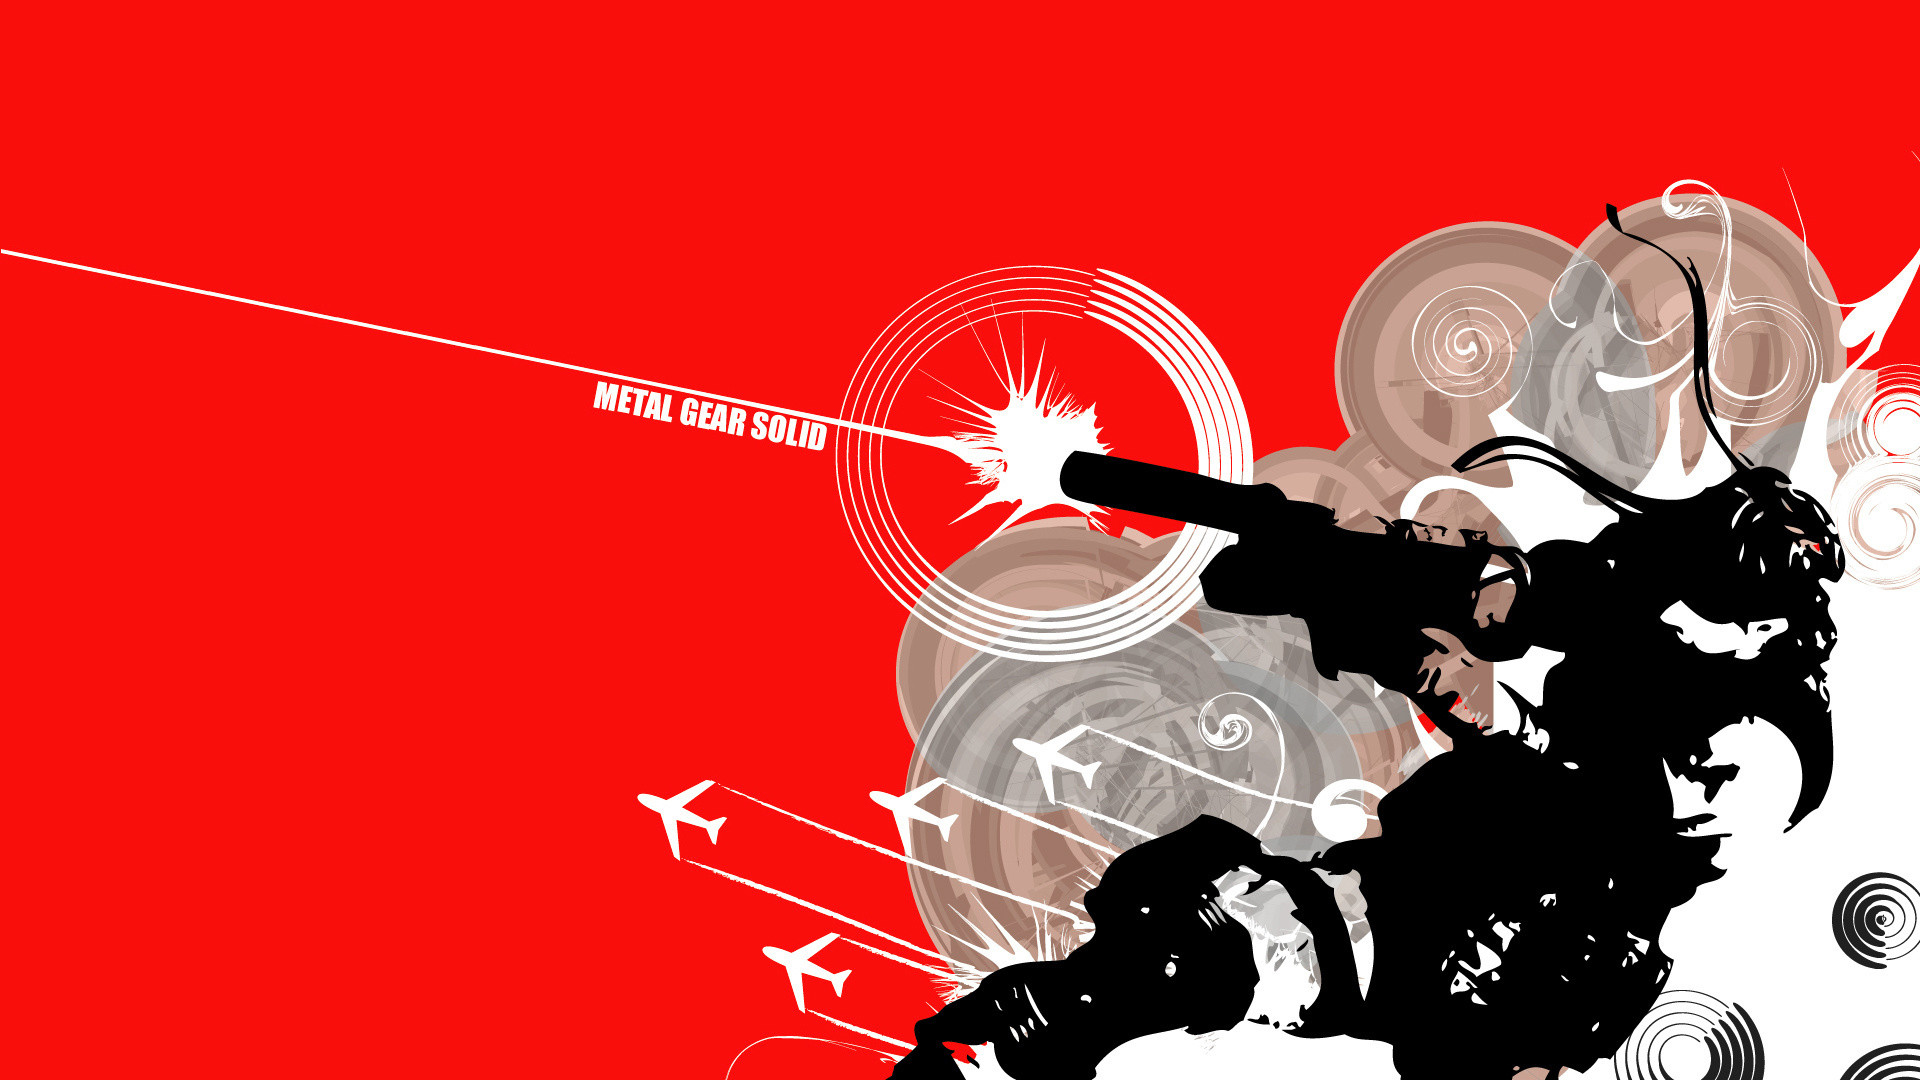 Metal Gear Solid Wallpaper 1080p 76 Images